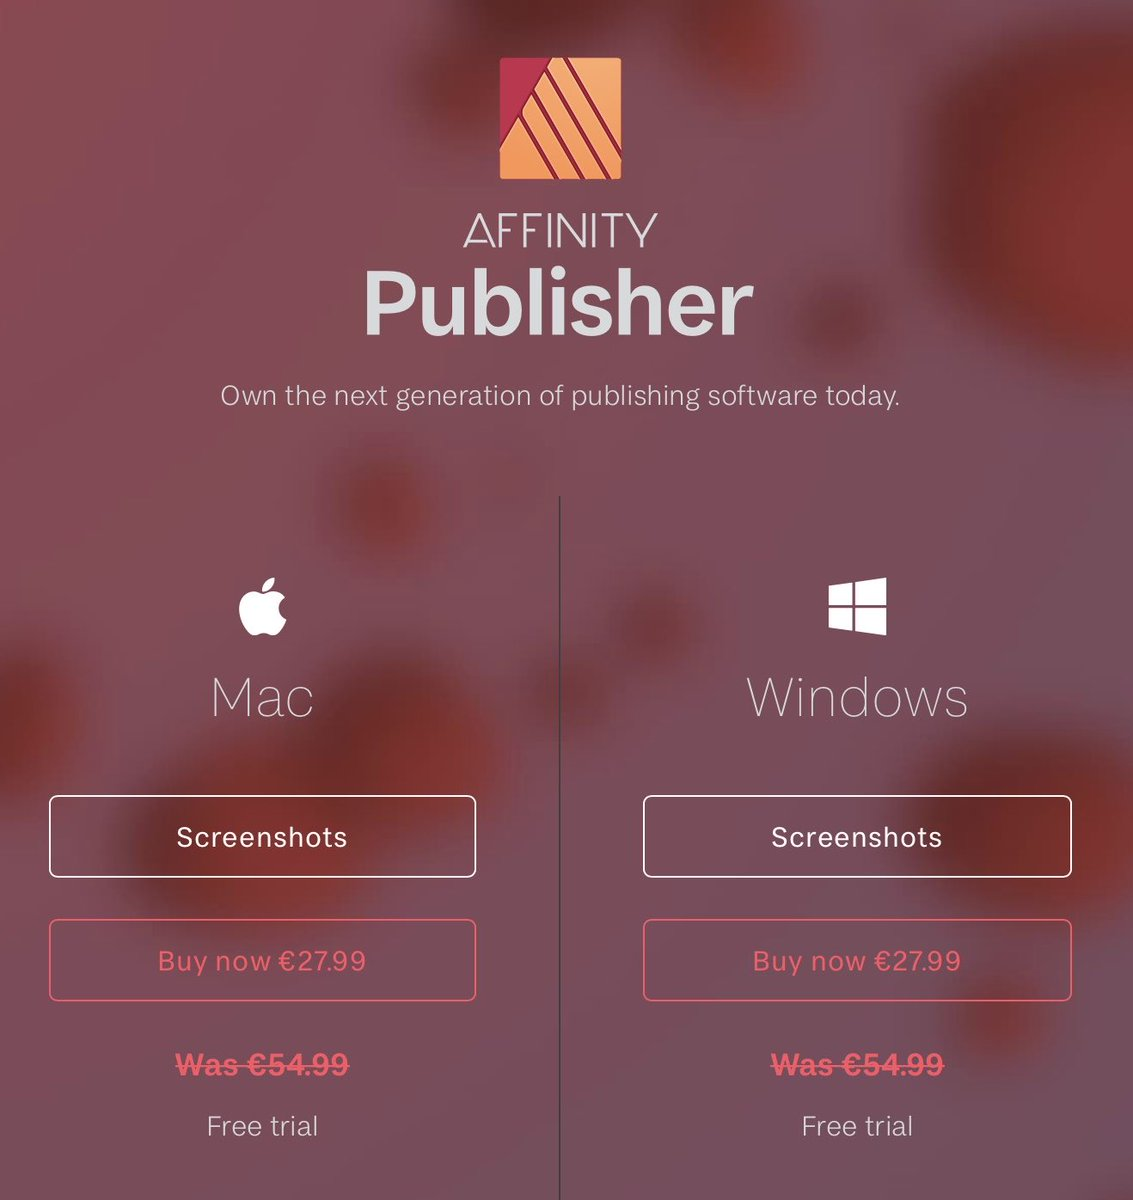 Affinity publisher available on Mac and Windows for the price of 27,99€ in place of 54,99€ until end of June 2021.